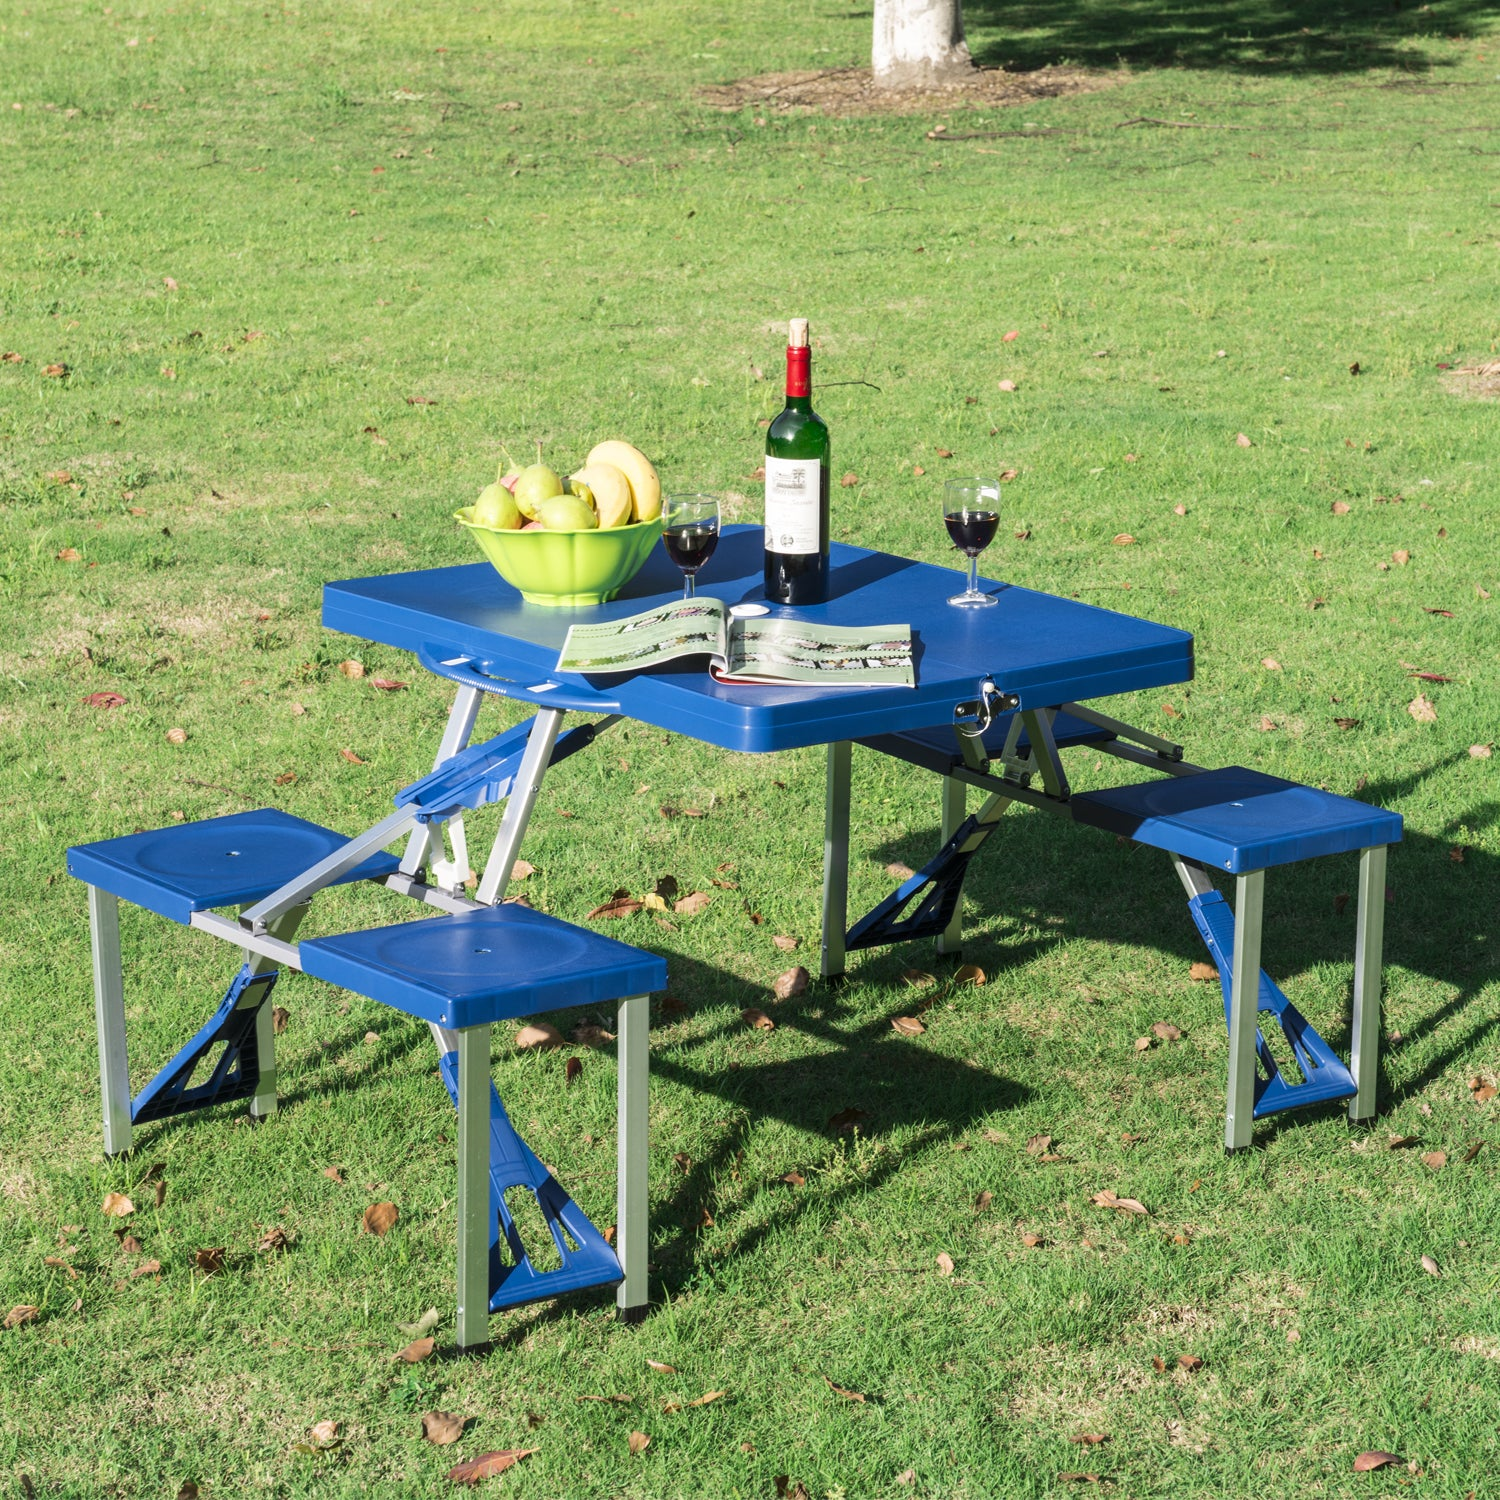 Outsunny Blue Aluminum Portable Folding Outdoor Camp Suitcase Picnic Table With 4 Seats Free Shipping Today 12558081